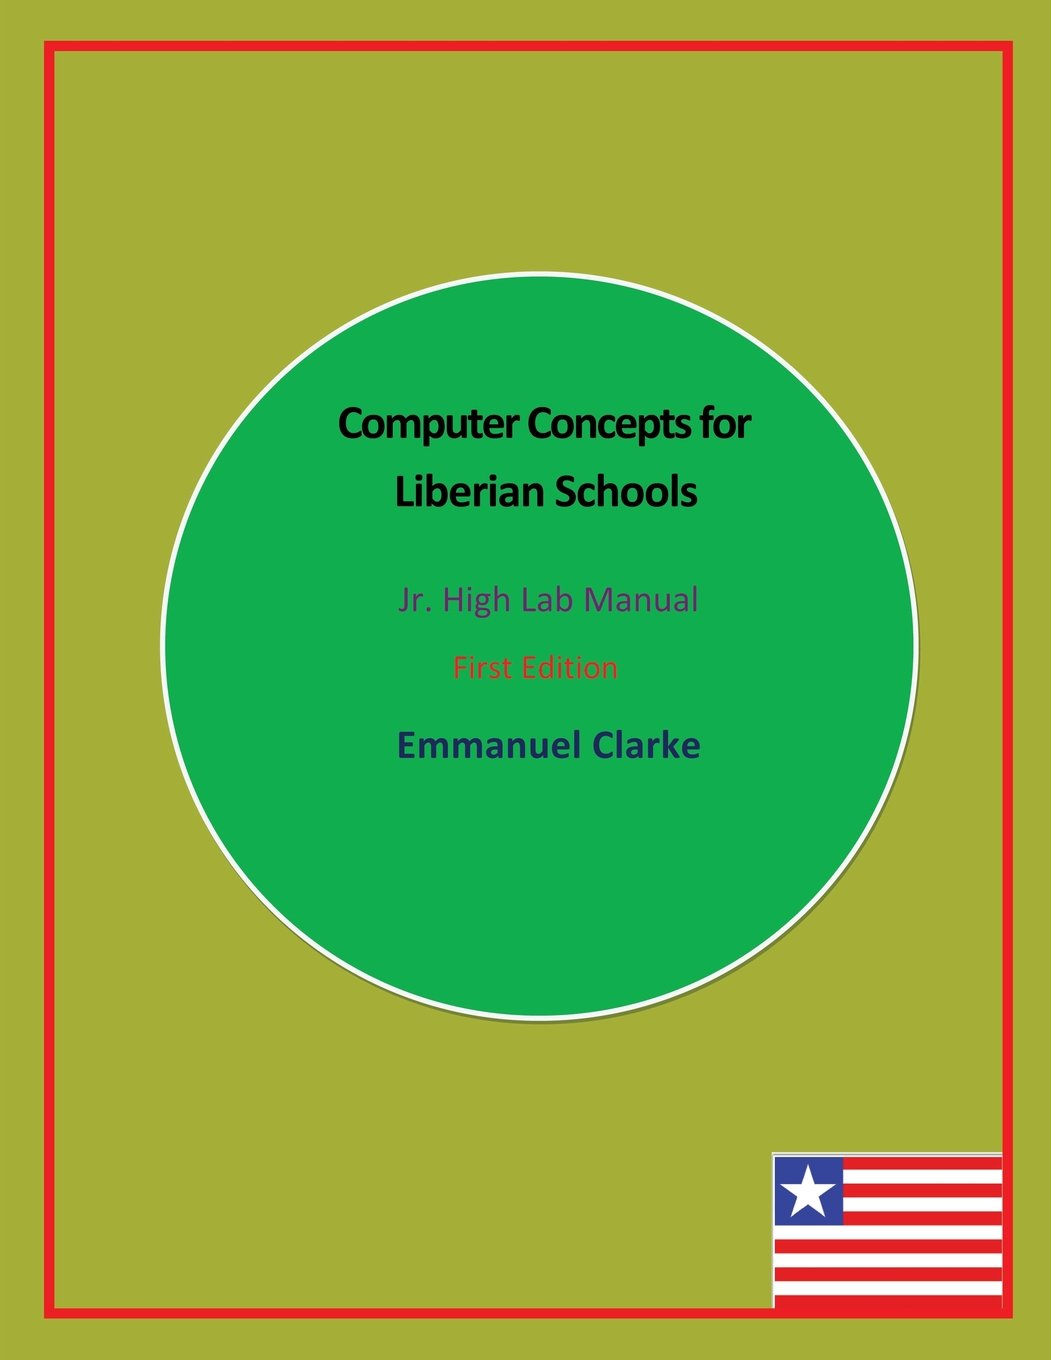 Computer Concepts for Liberian Schools, Jr. High Lab Manual: First Edition:  Emmanuel Clarke: 9780989804233: Amazon.com: Books